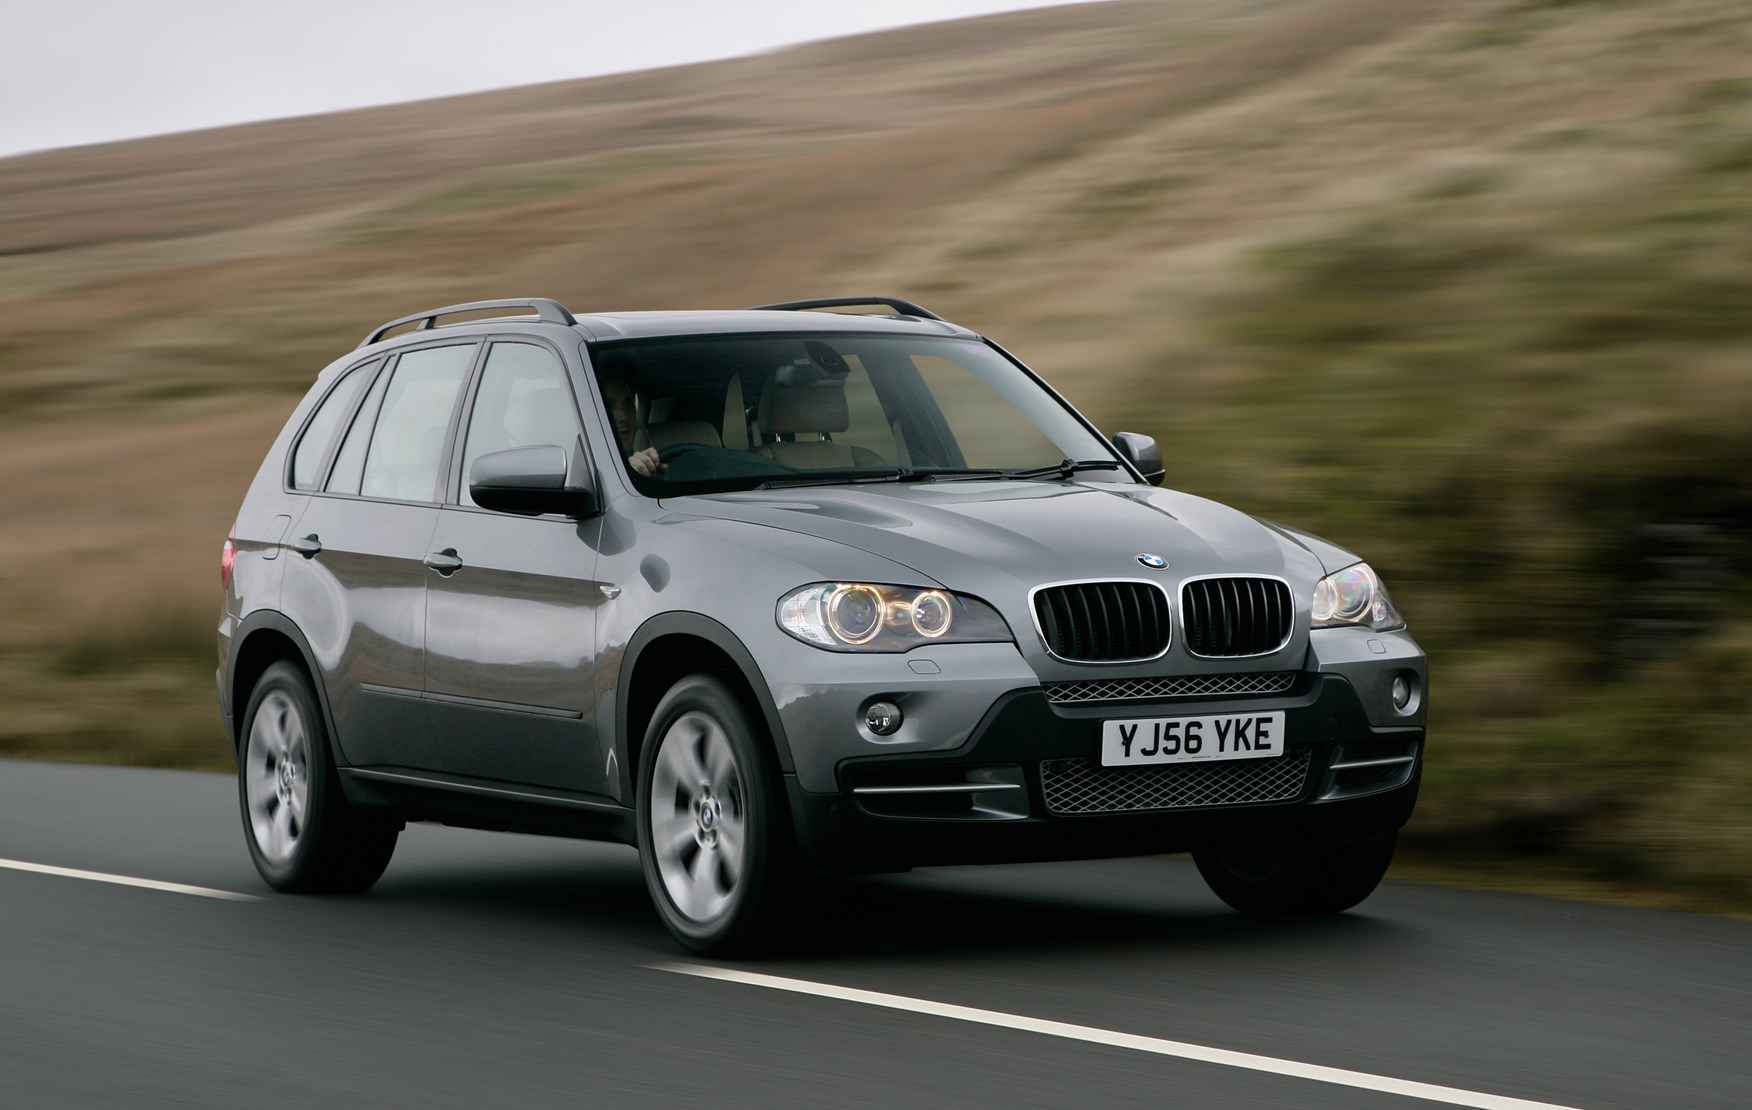 2000 bmw cars autotrader up ingcarshq